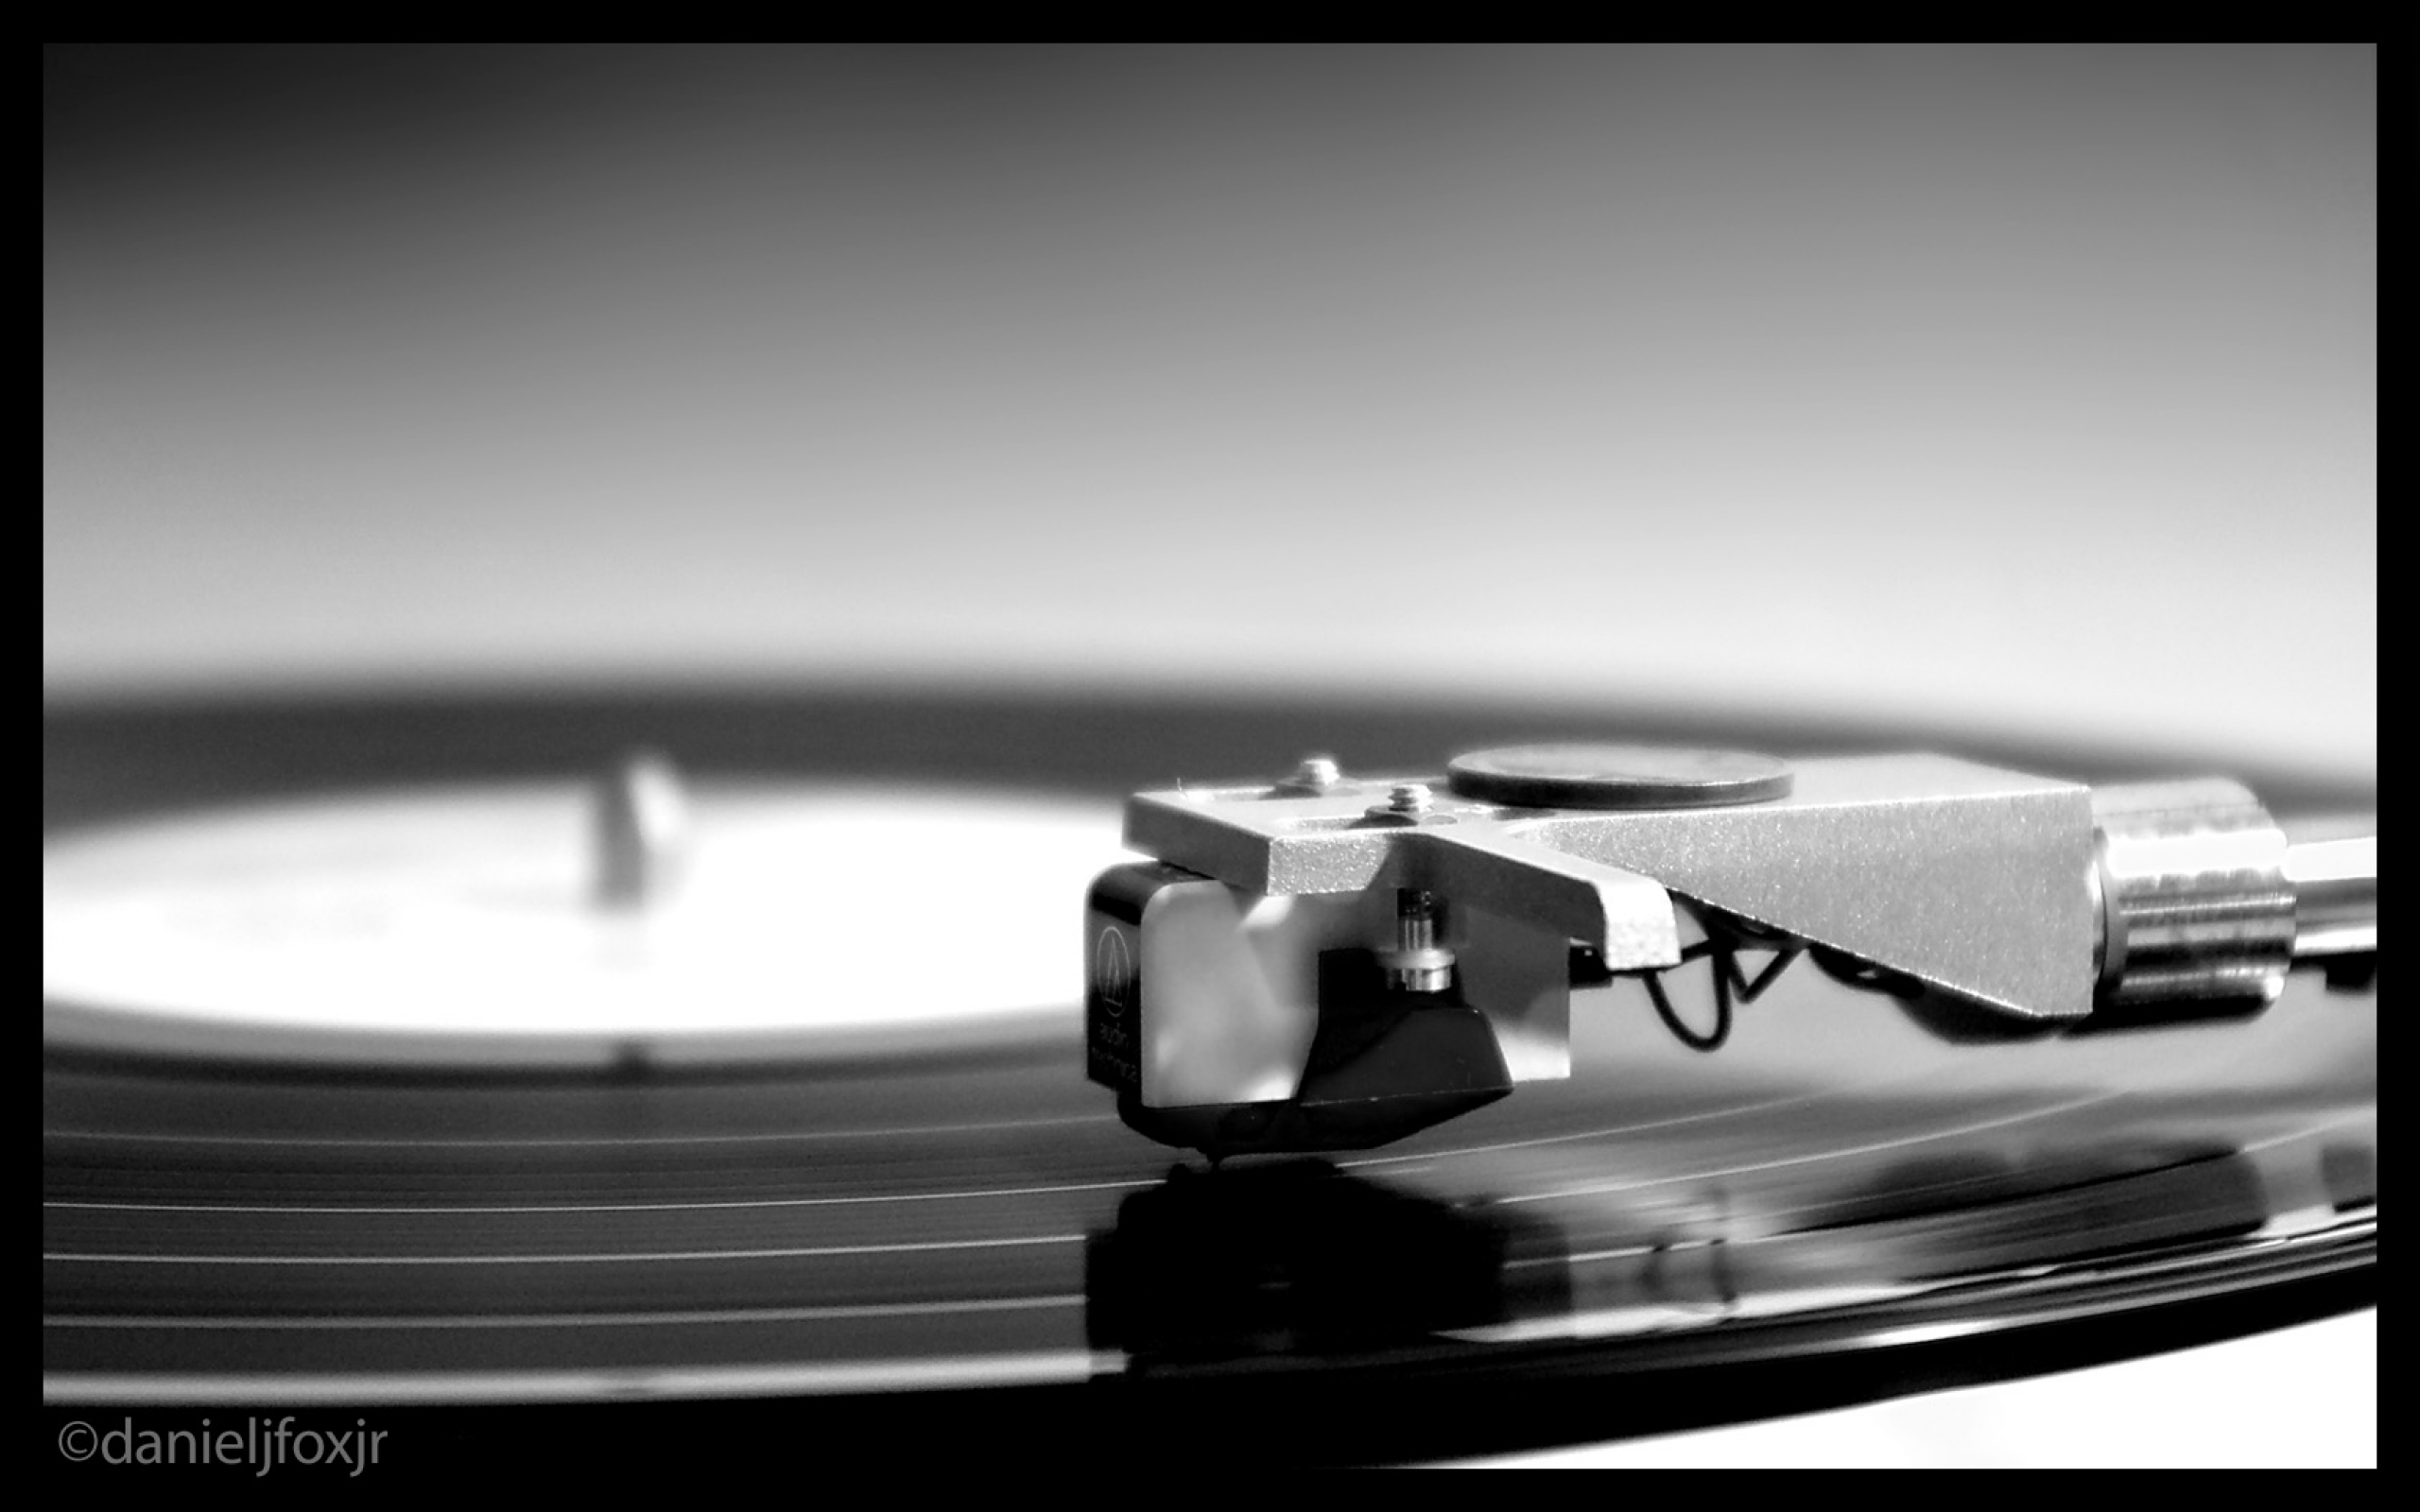 turntable record player monochrome greyscale 1680x1050 wallpaper Art 2560x1600